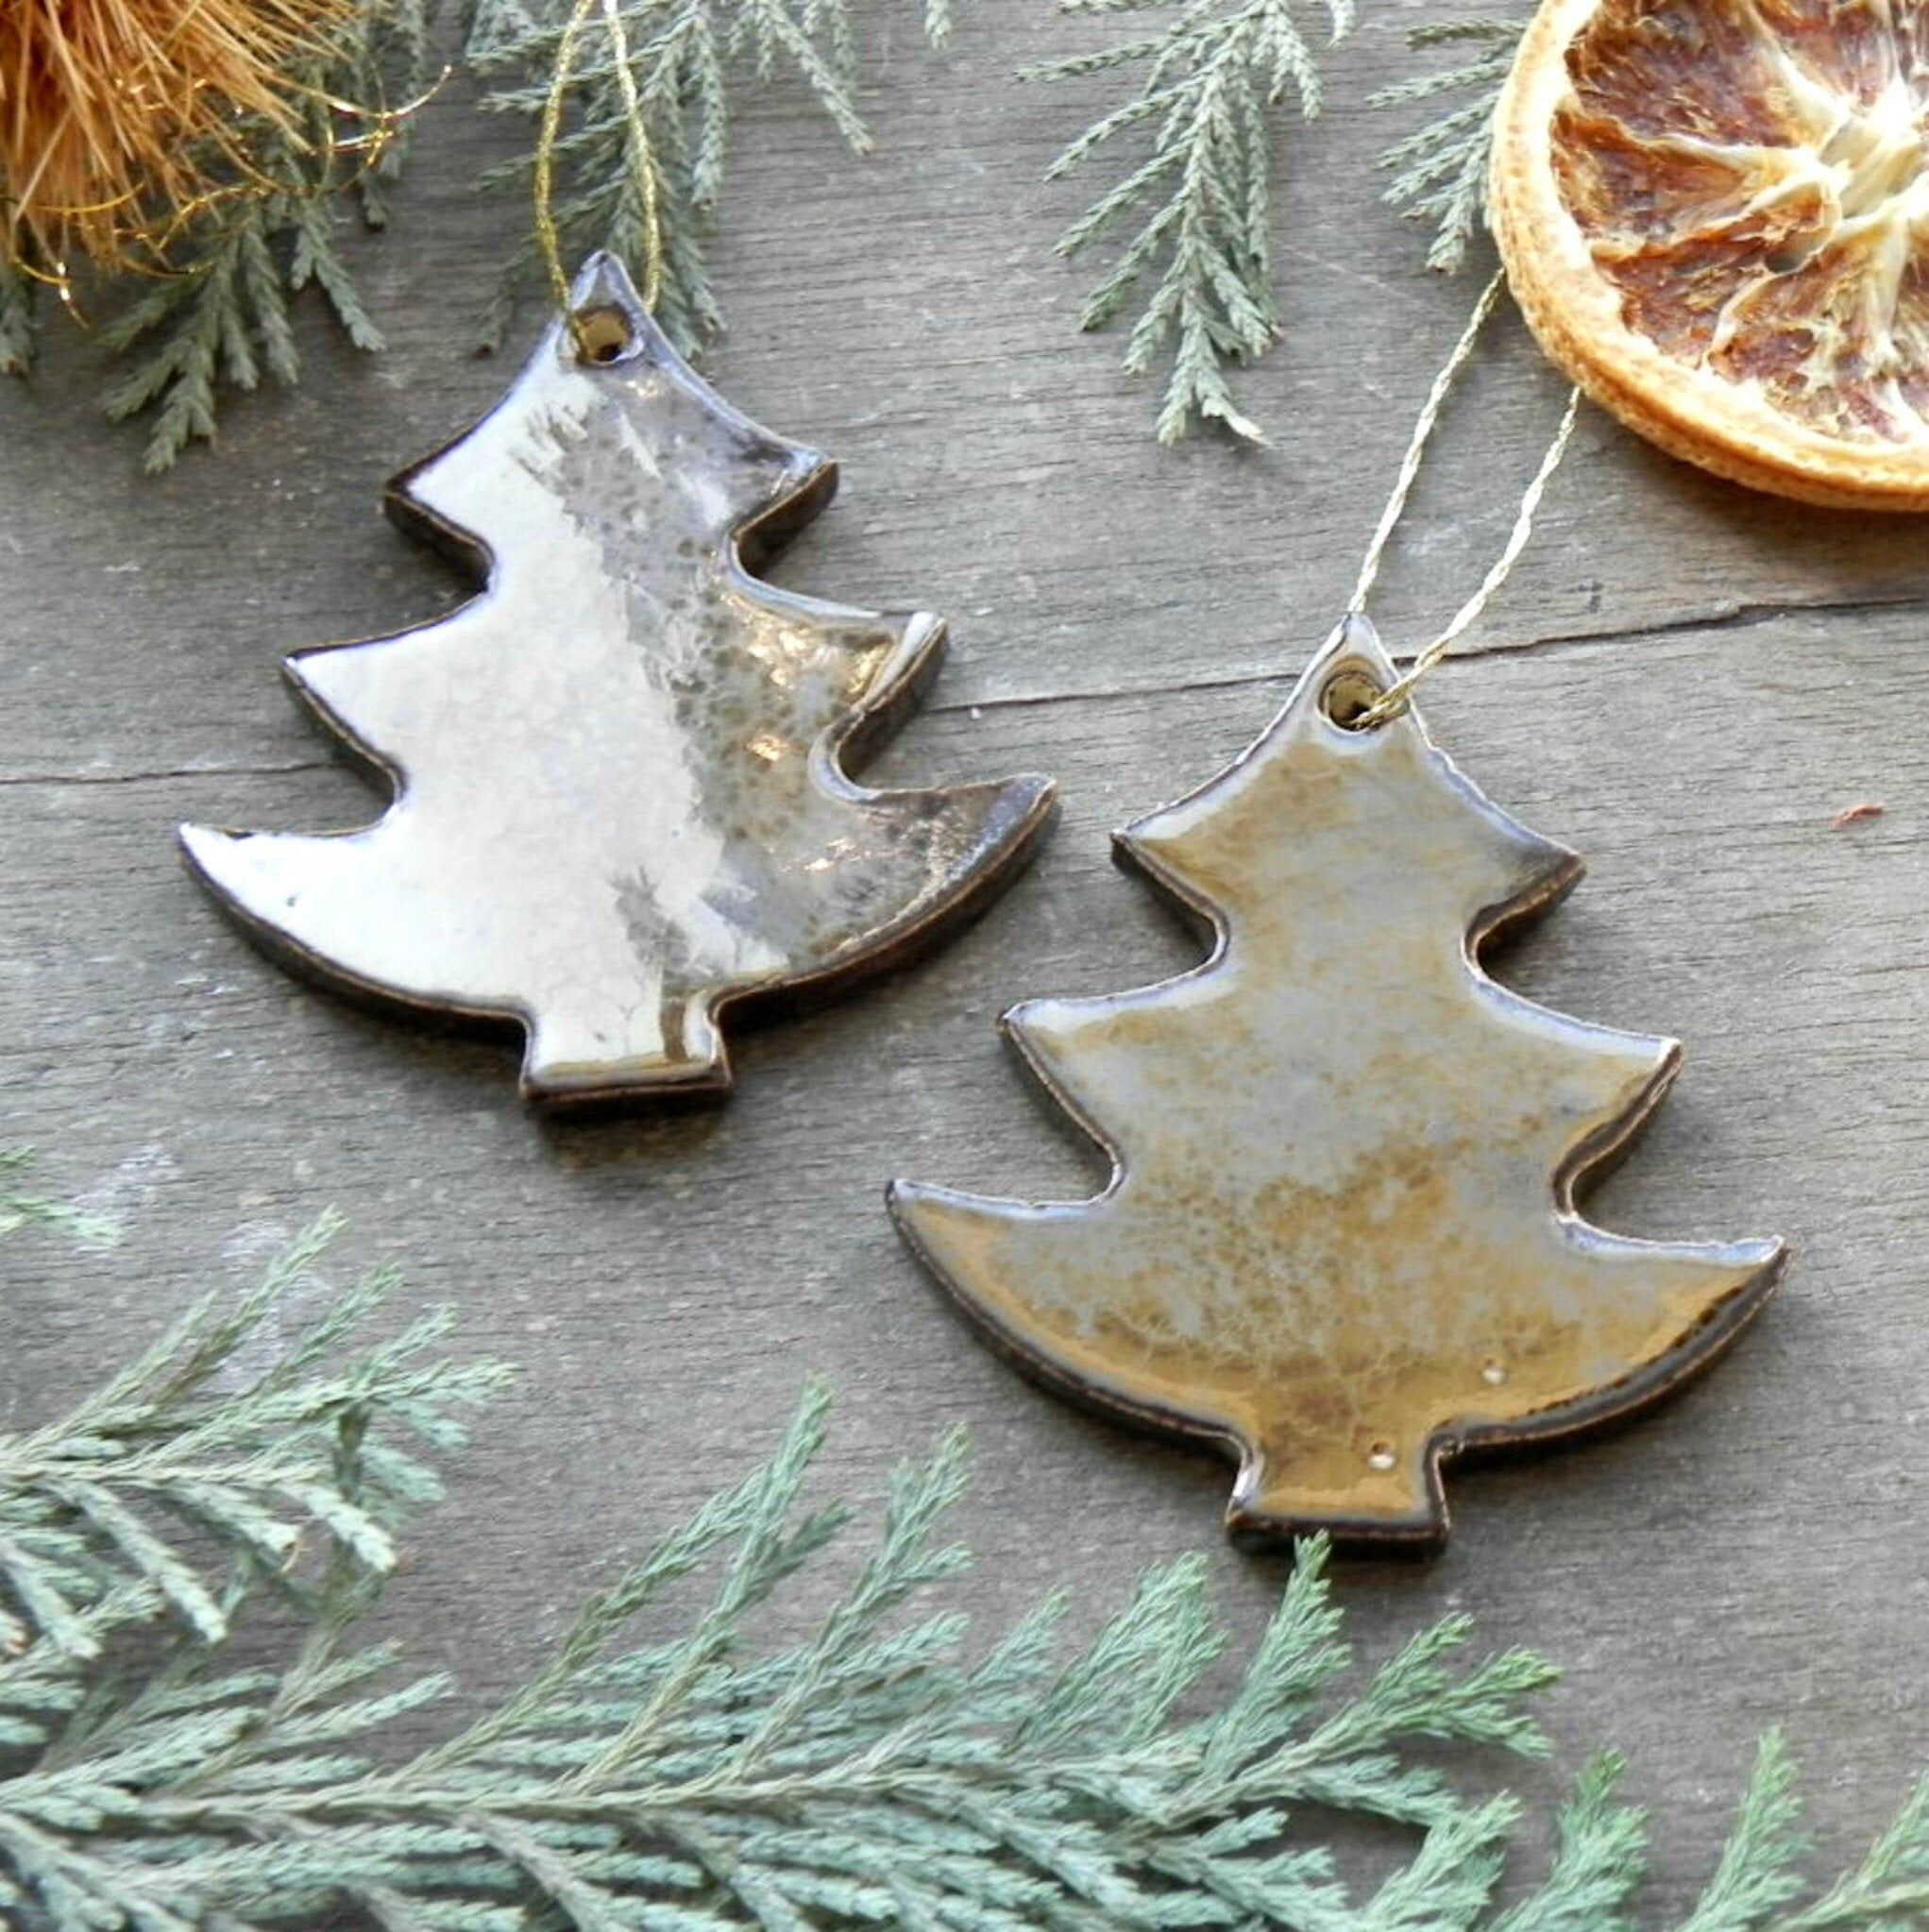 Metal Gold Christmas Tree Ornament Set Ceramic Home Decoration Pottery Gift Old Metal Gold Modern Christmas Decor Ceramic Ornaments Pottery Gifts Modern Christmas Decor Christmas Tree Ornaments